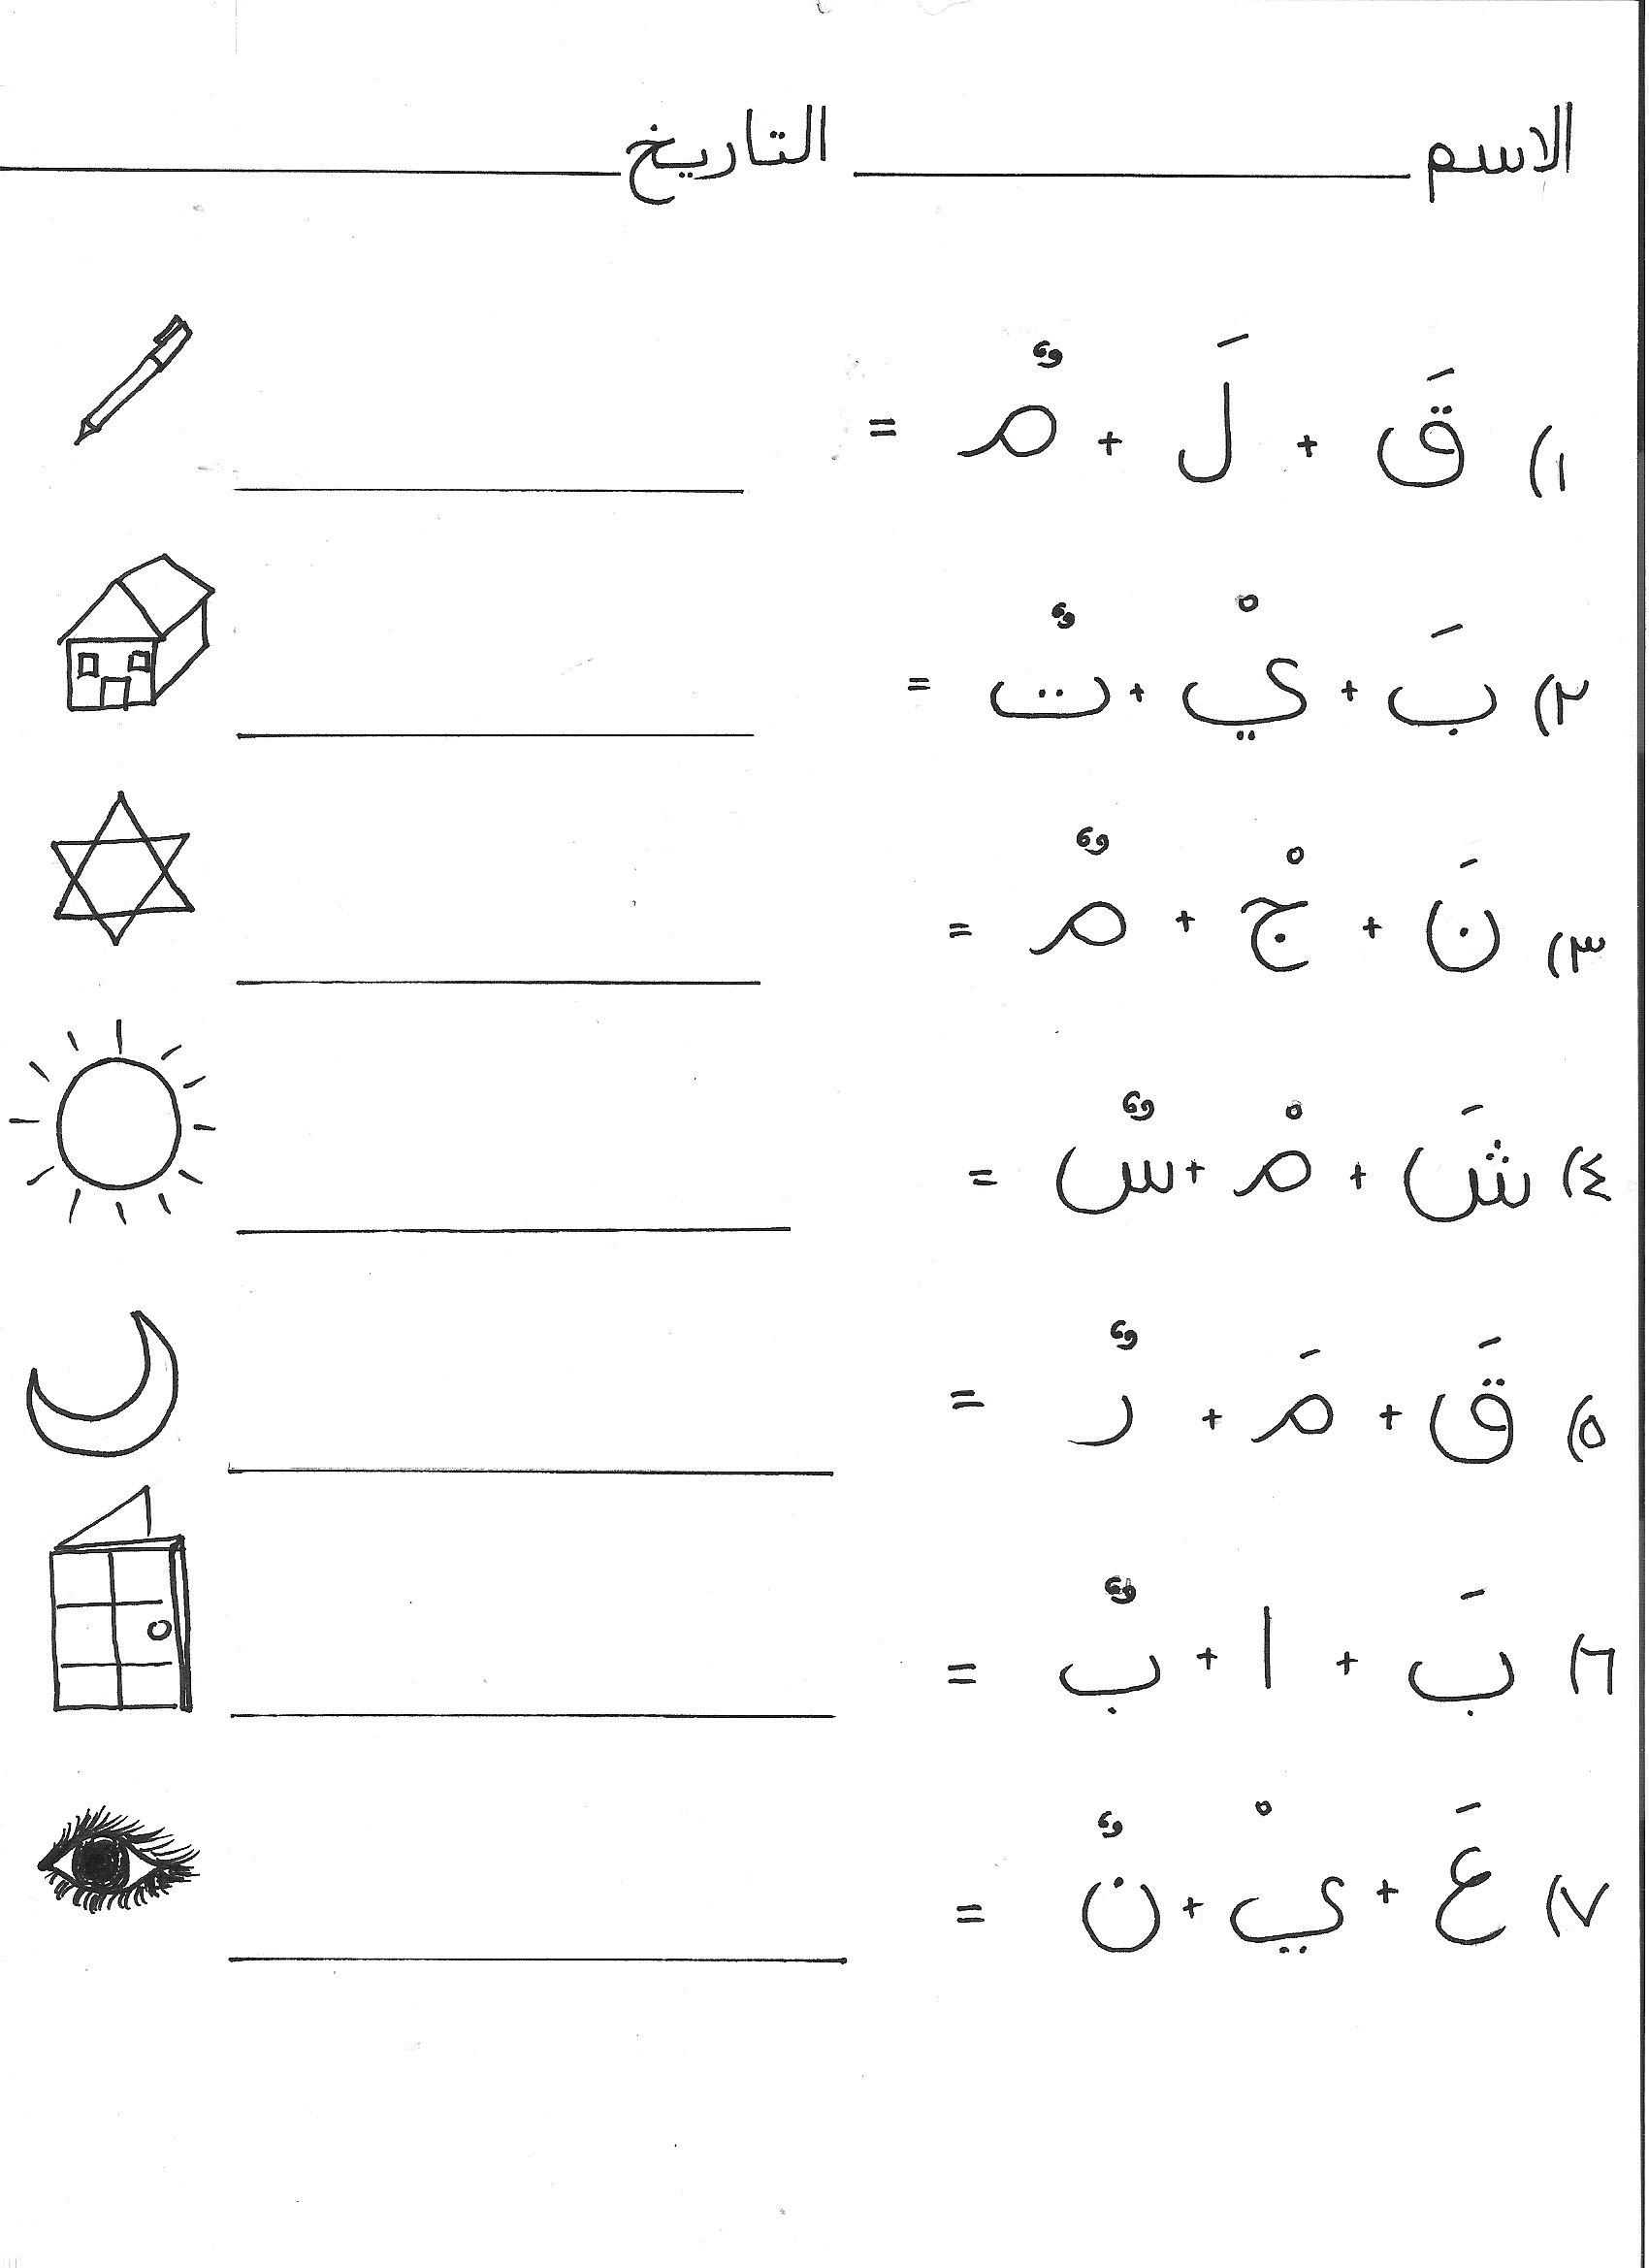 Joining Letters To Make Words - Funarabicworksheets | Arabic